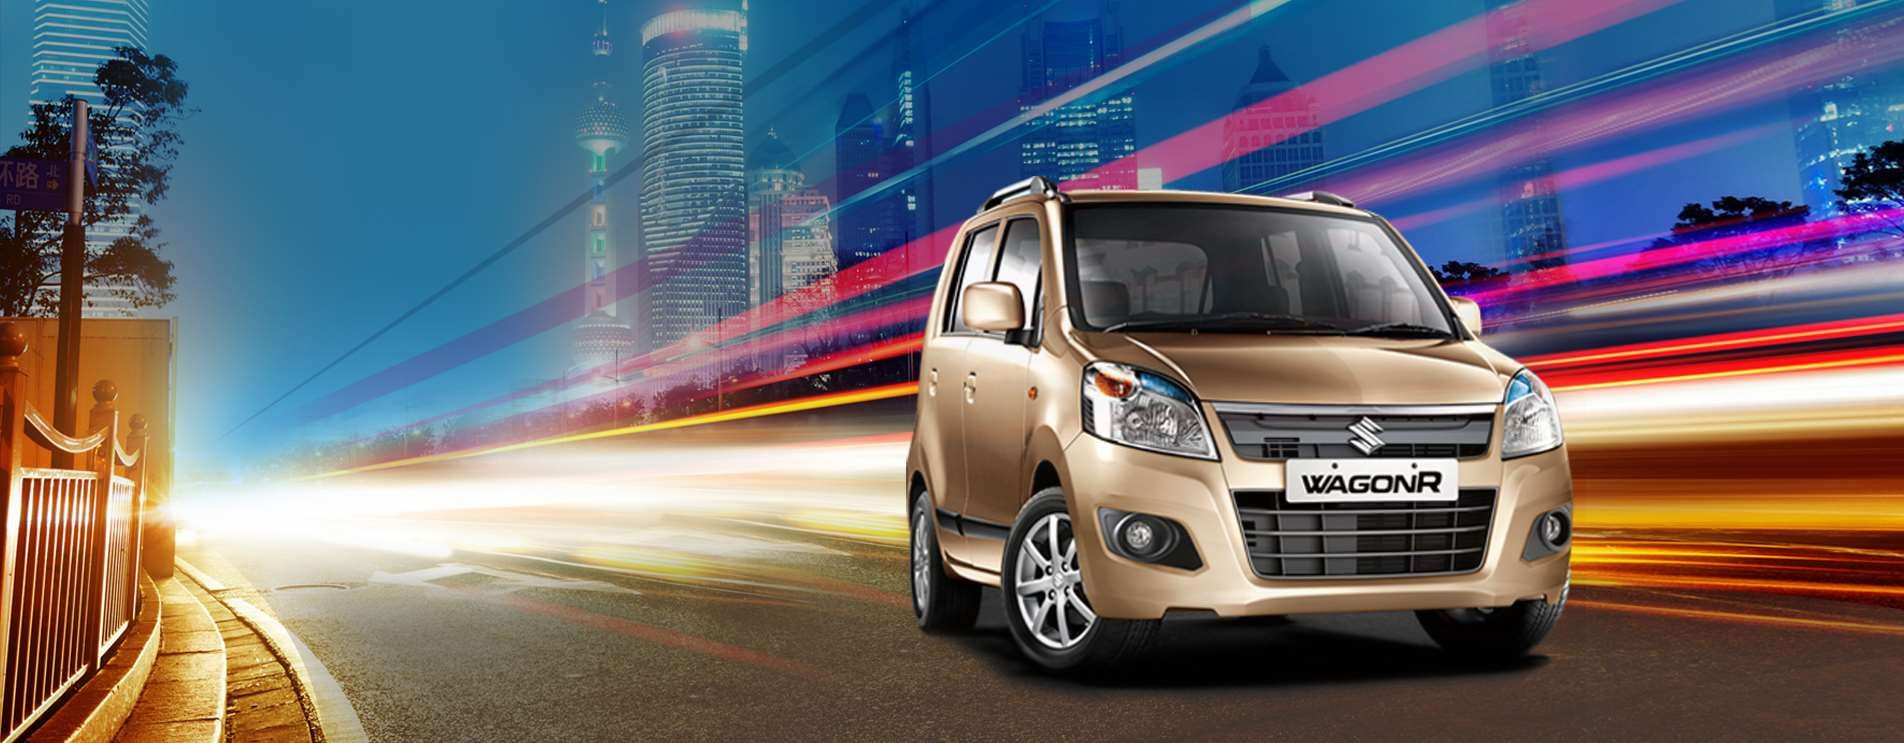 All New And Smartest Wagonr By Maruti Suzuki Available In Petrol Cng And Lpg Best Mileage Car In India Car Lease Wagon R Car